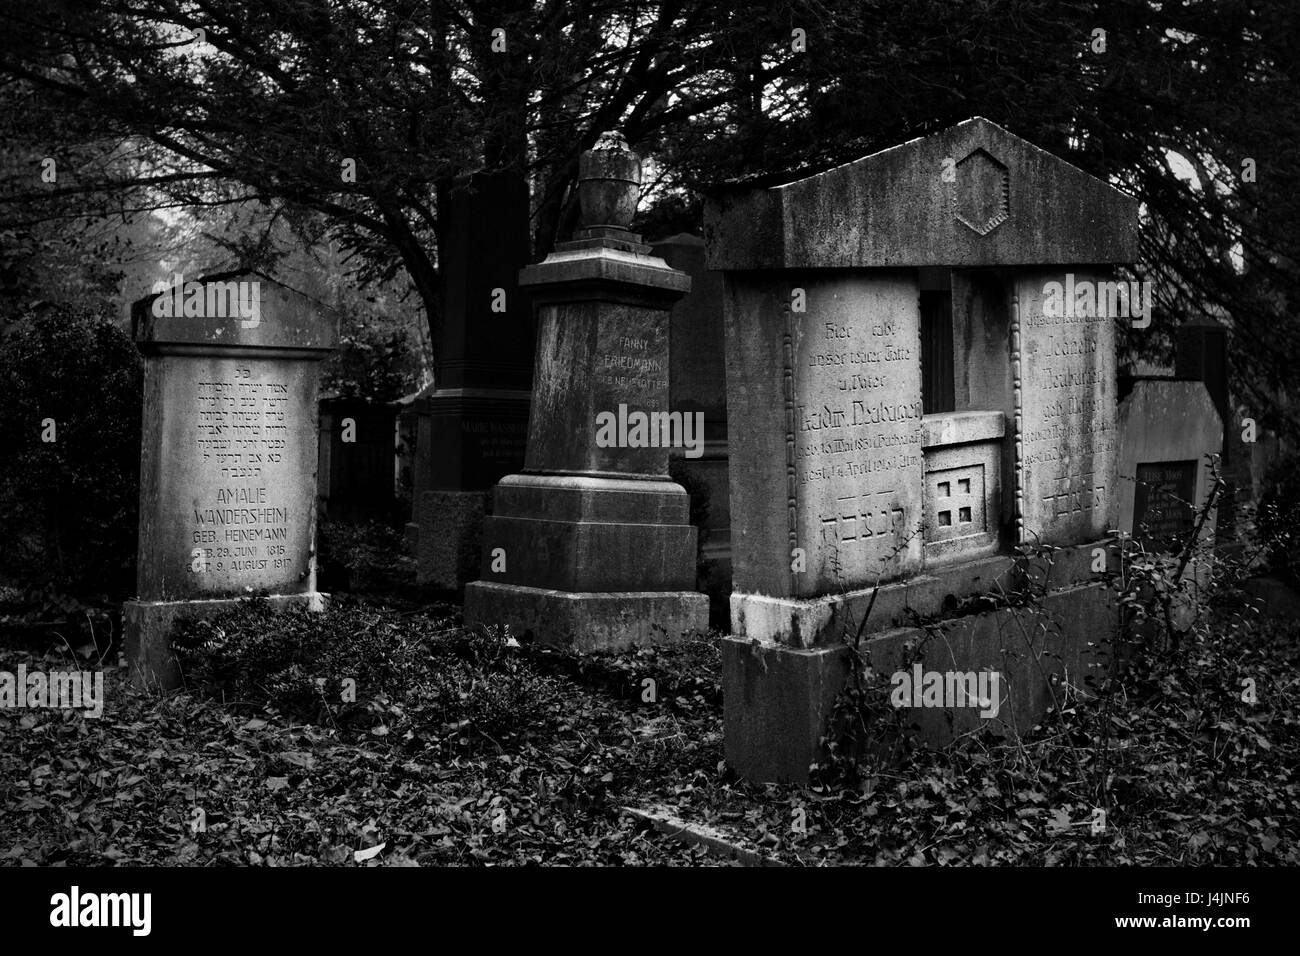 Ulm, Germany - November 1, 2013: Old jewish graves and tombstones in the main cemetery (Hauptfriedhof) on November - Stock Image